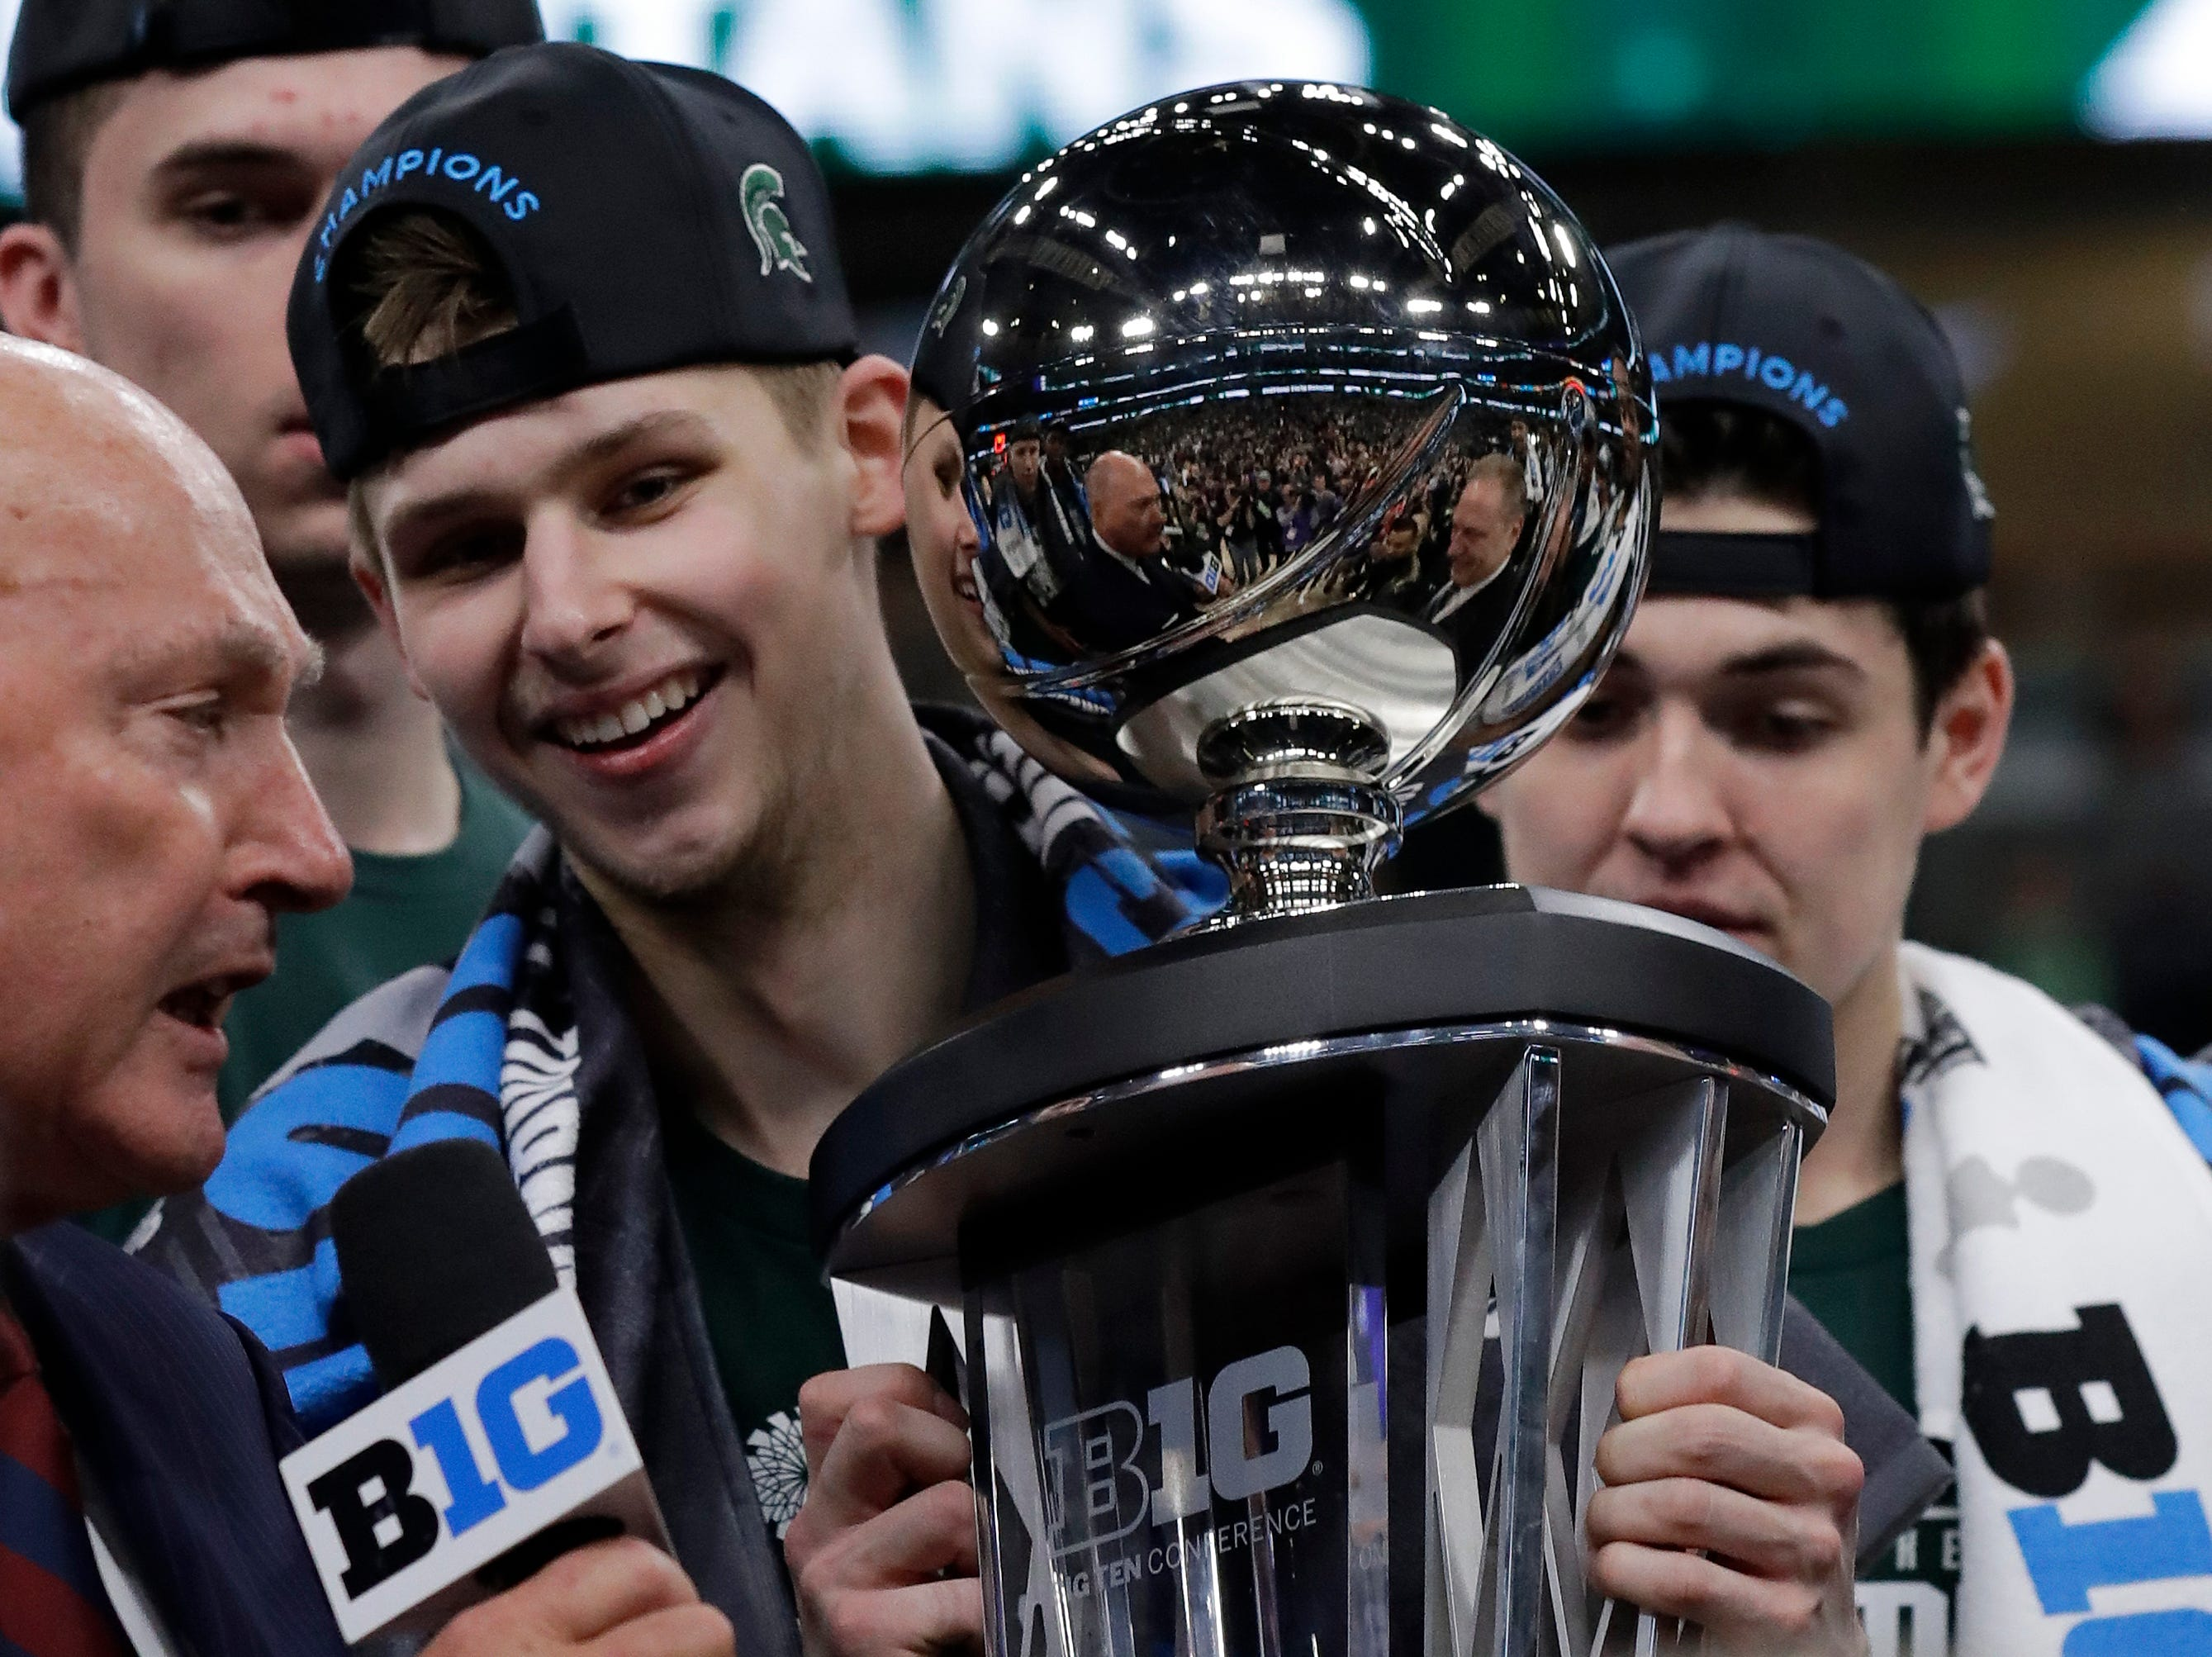 Michigan State's Matt McQuaid holds the championship trophy as he celebrates after defeating Michigan 65-60.